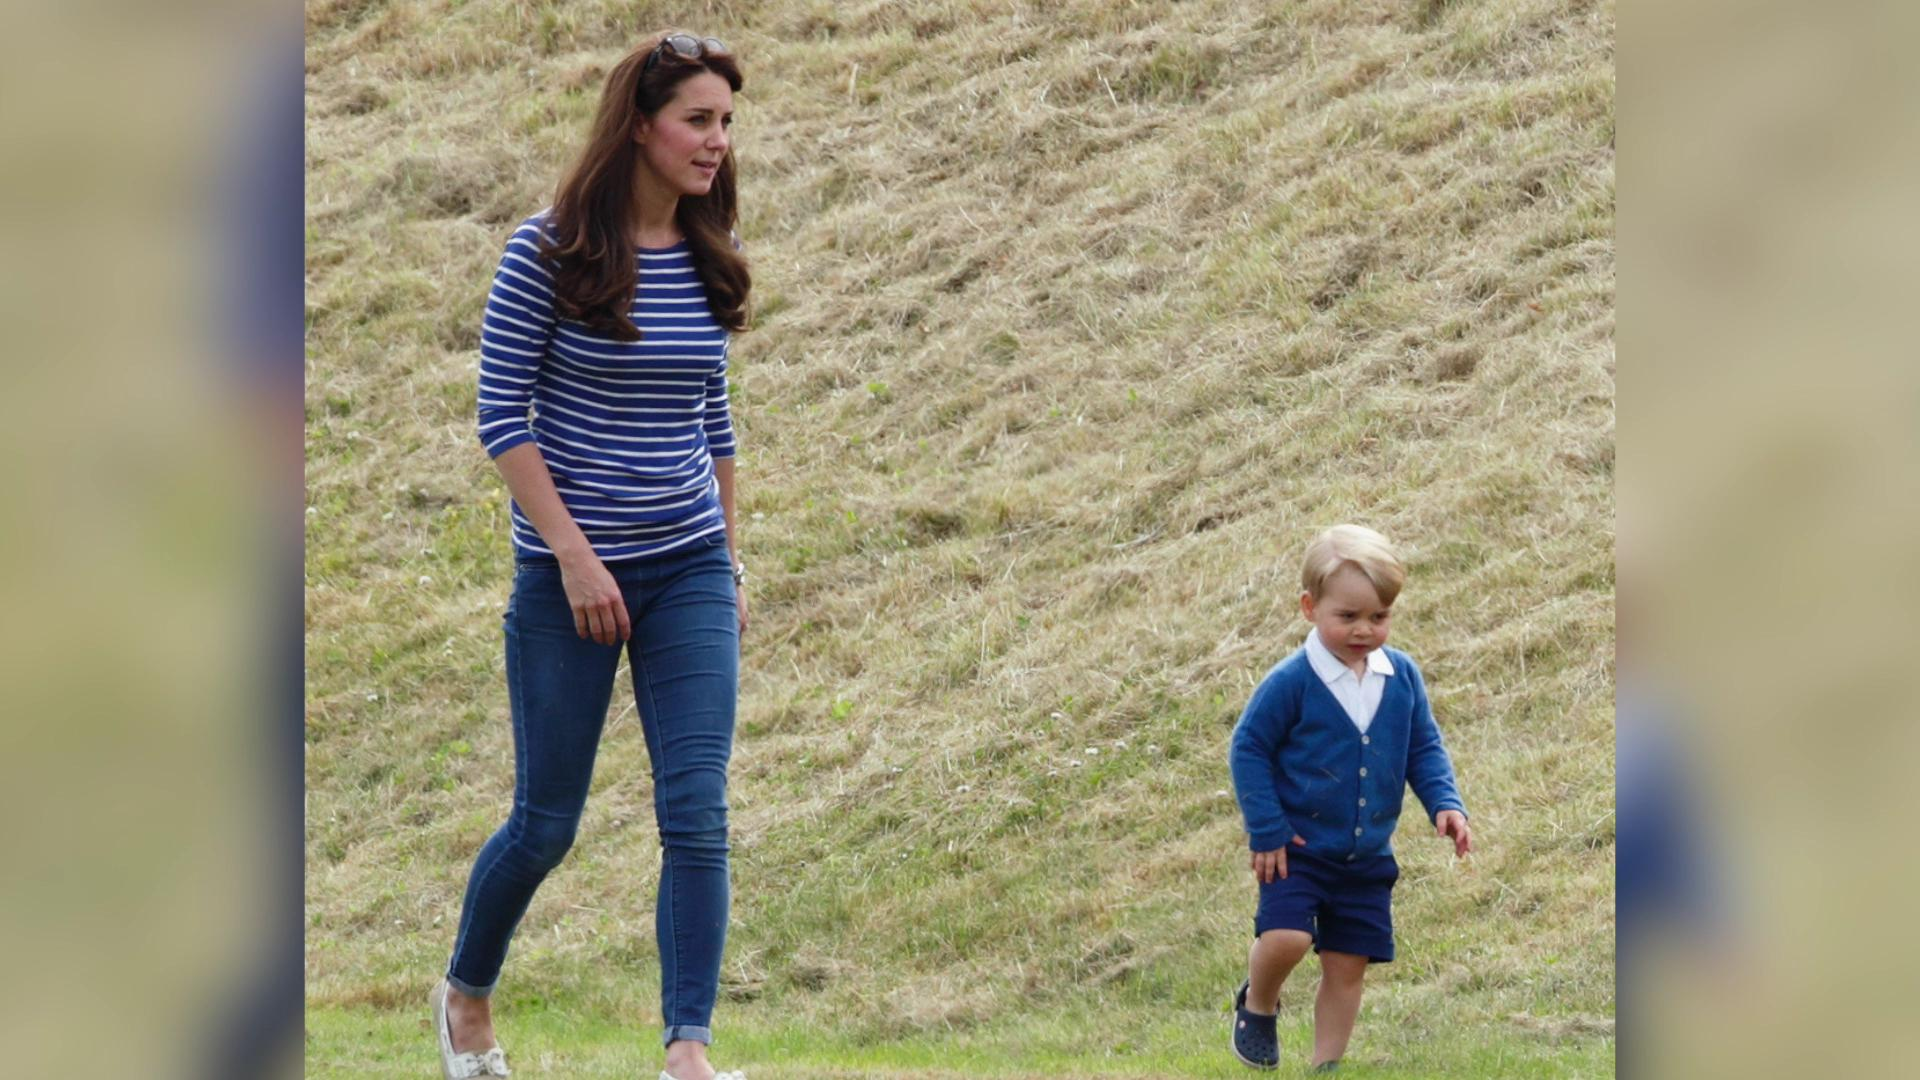 Kate Middleton's maternity jeans sell out